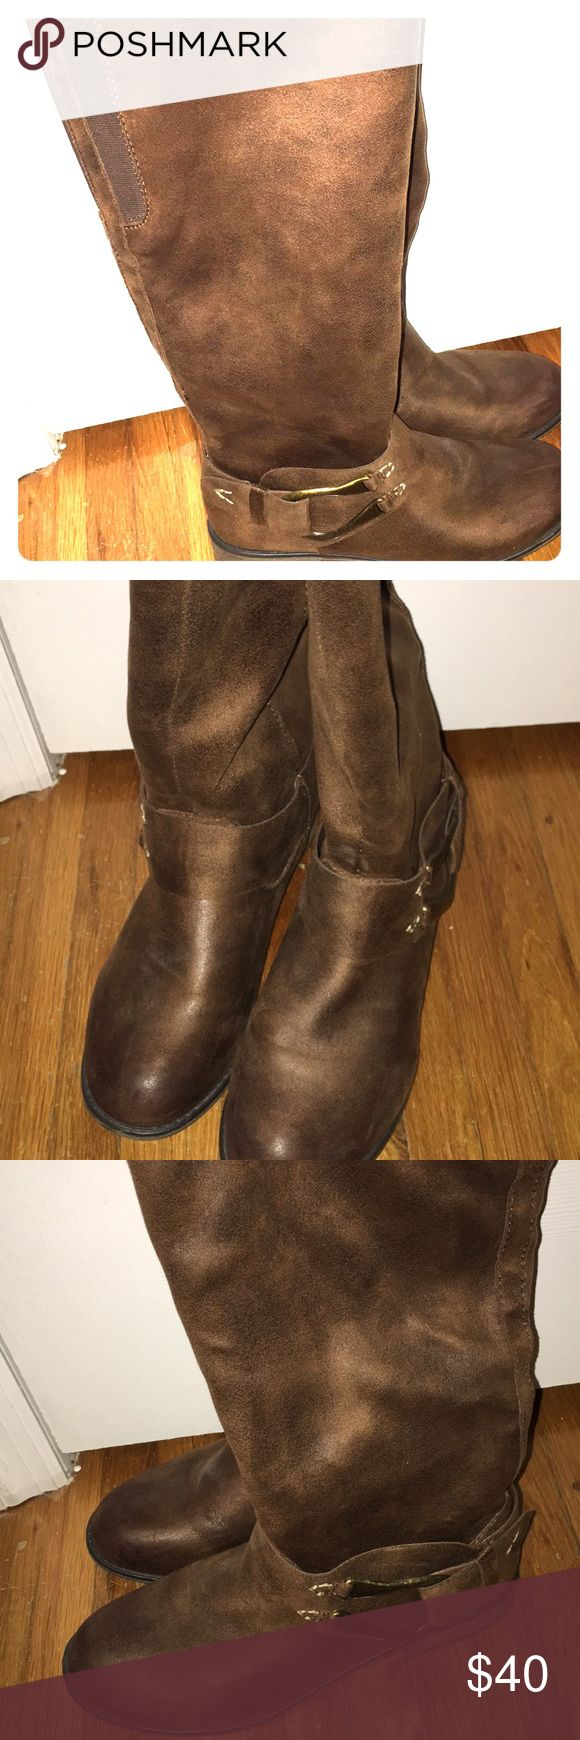 Dark chestnut Suede Brown long boots size 9 👢☕️ Lovely preloved suede boots size 9 comfy Unknown brand from 🎯 Target Boots hit right at the knee Shoes Heeled Boots